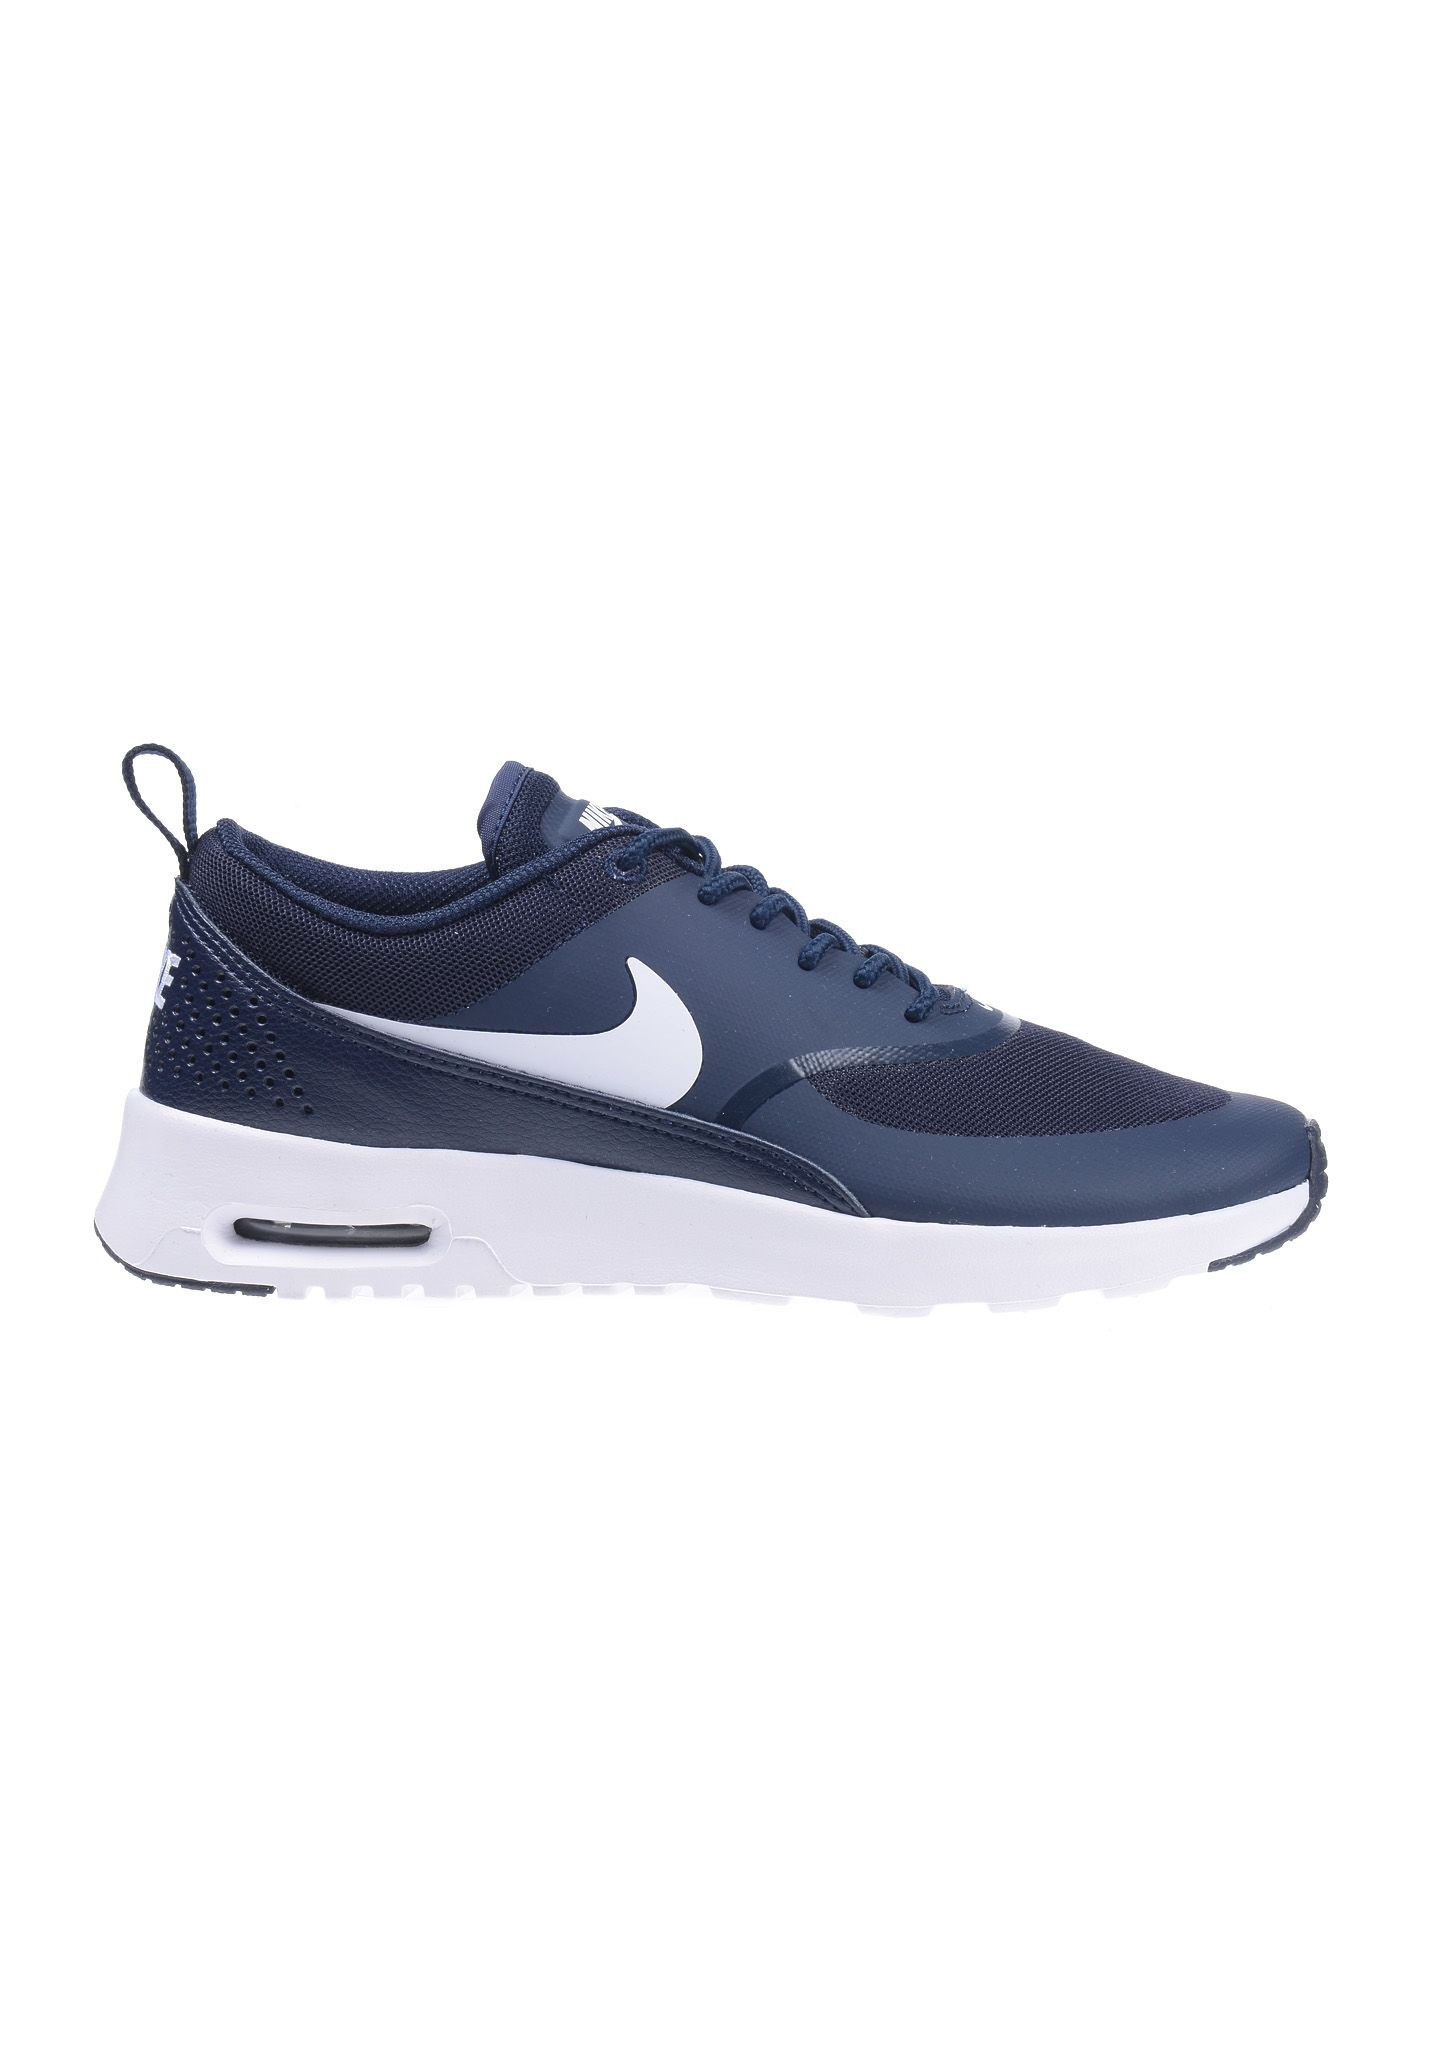 nike air max thea sneaker damen learn german. Black Bedroom Furniture Sets. Home Design Ideas